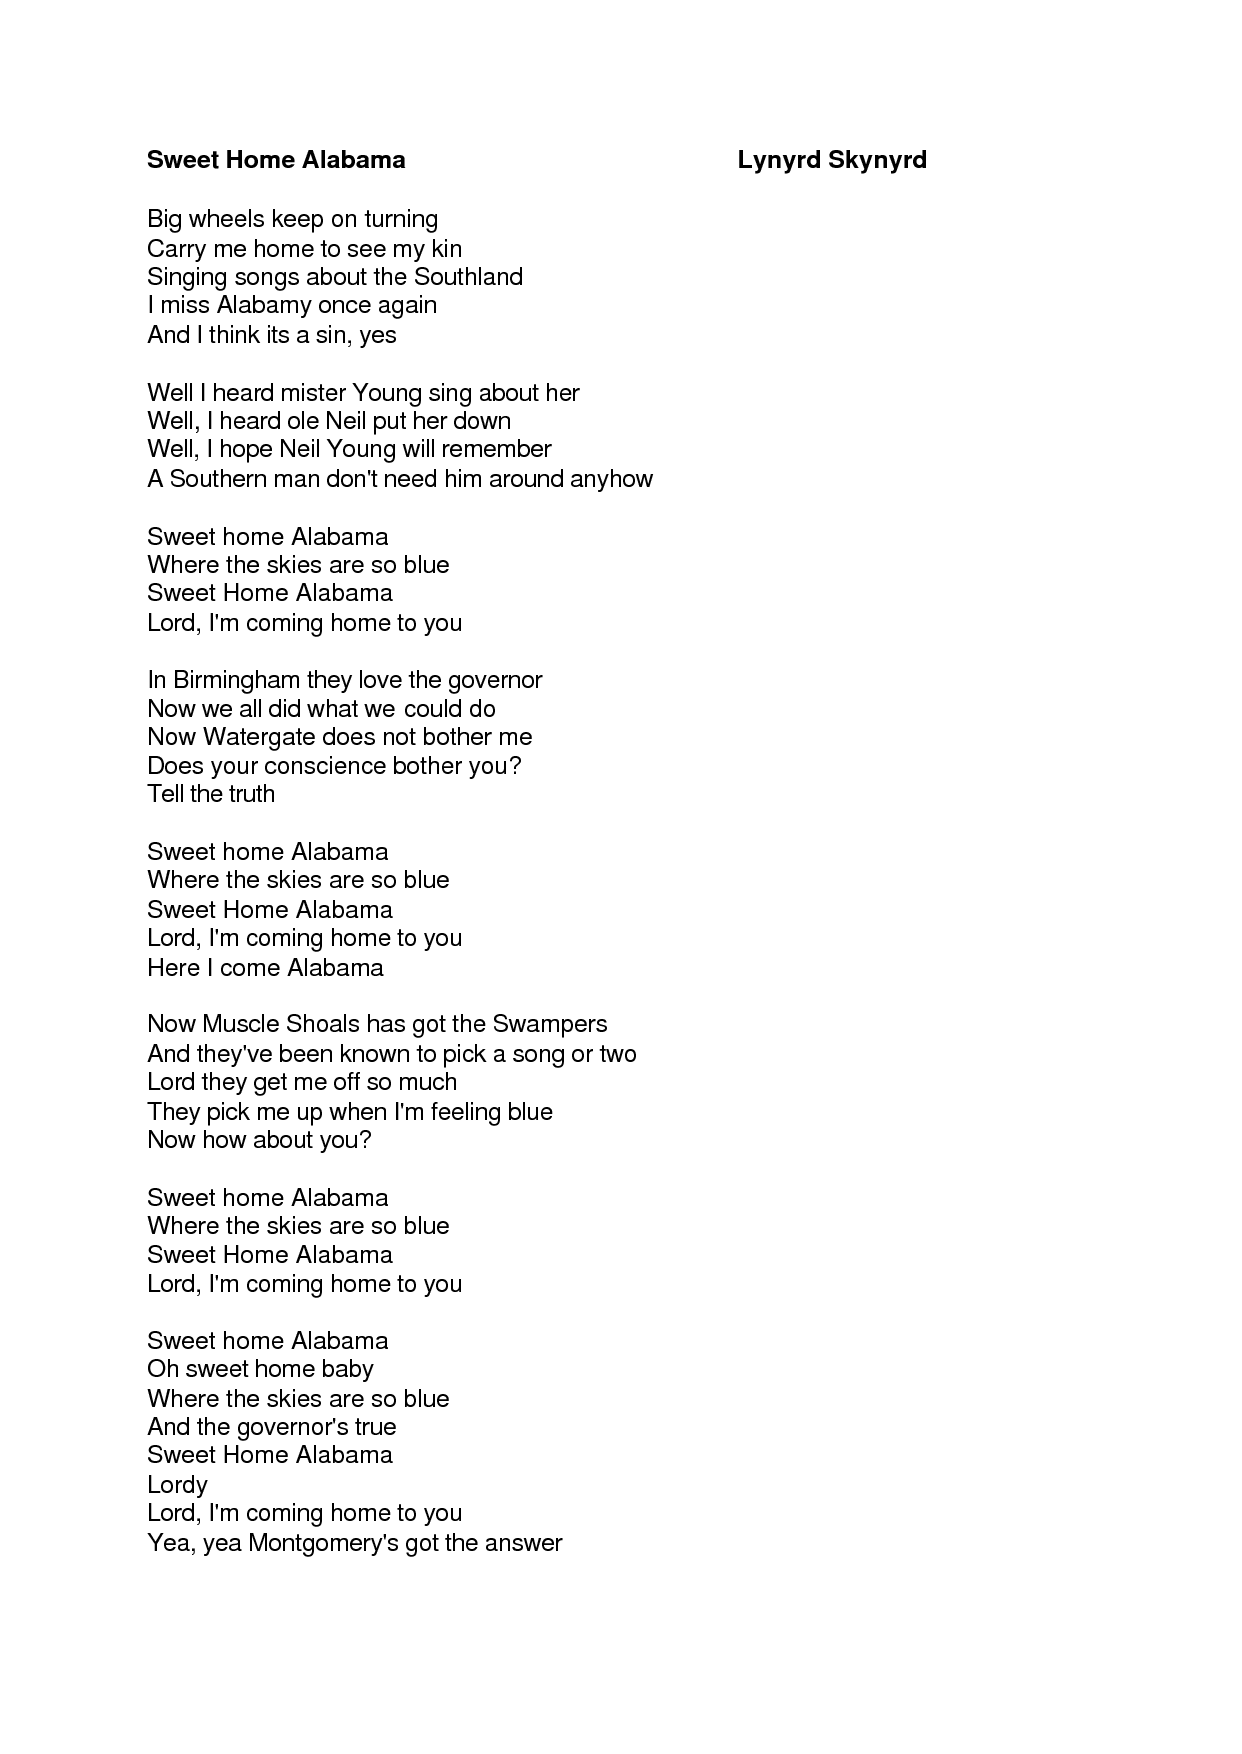 Deutsch translation of small town usa by justin moore. Pin By Mel Mccoy On Sweet Home Alabama Roll Tide Sweet Home Alabama Lyrics Sweet Home Alabama Sweet Home